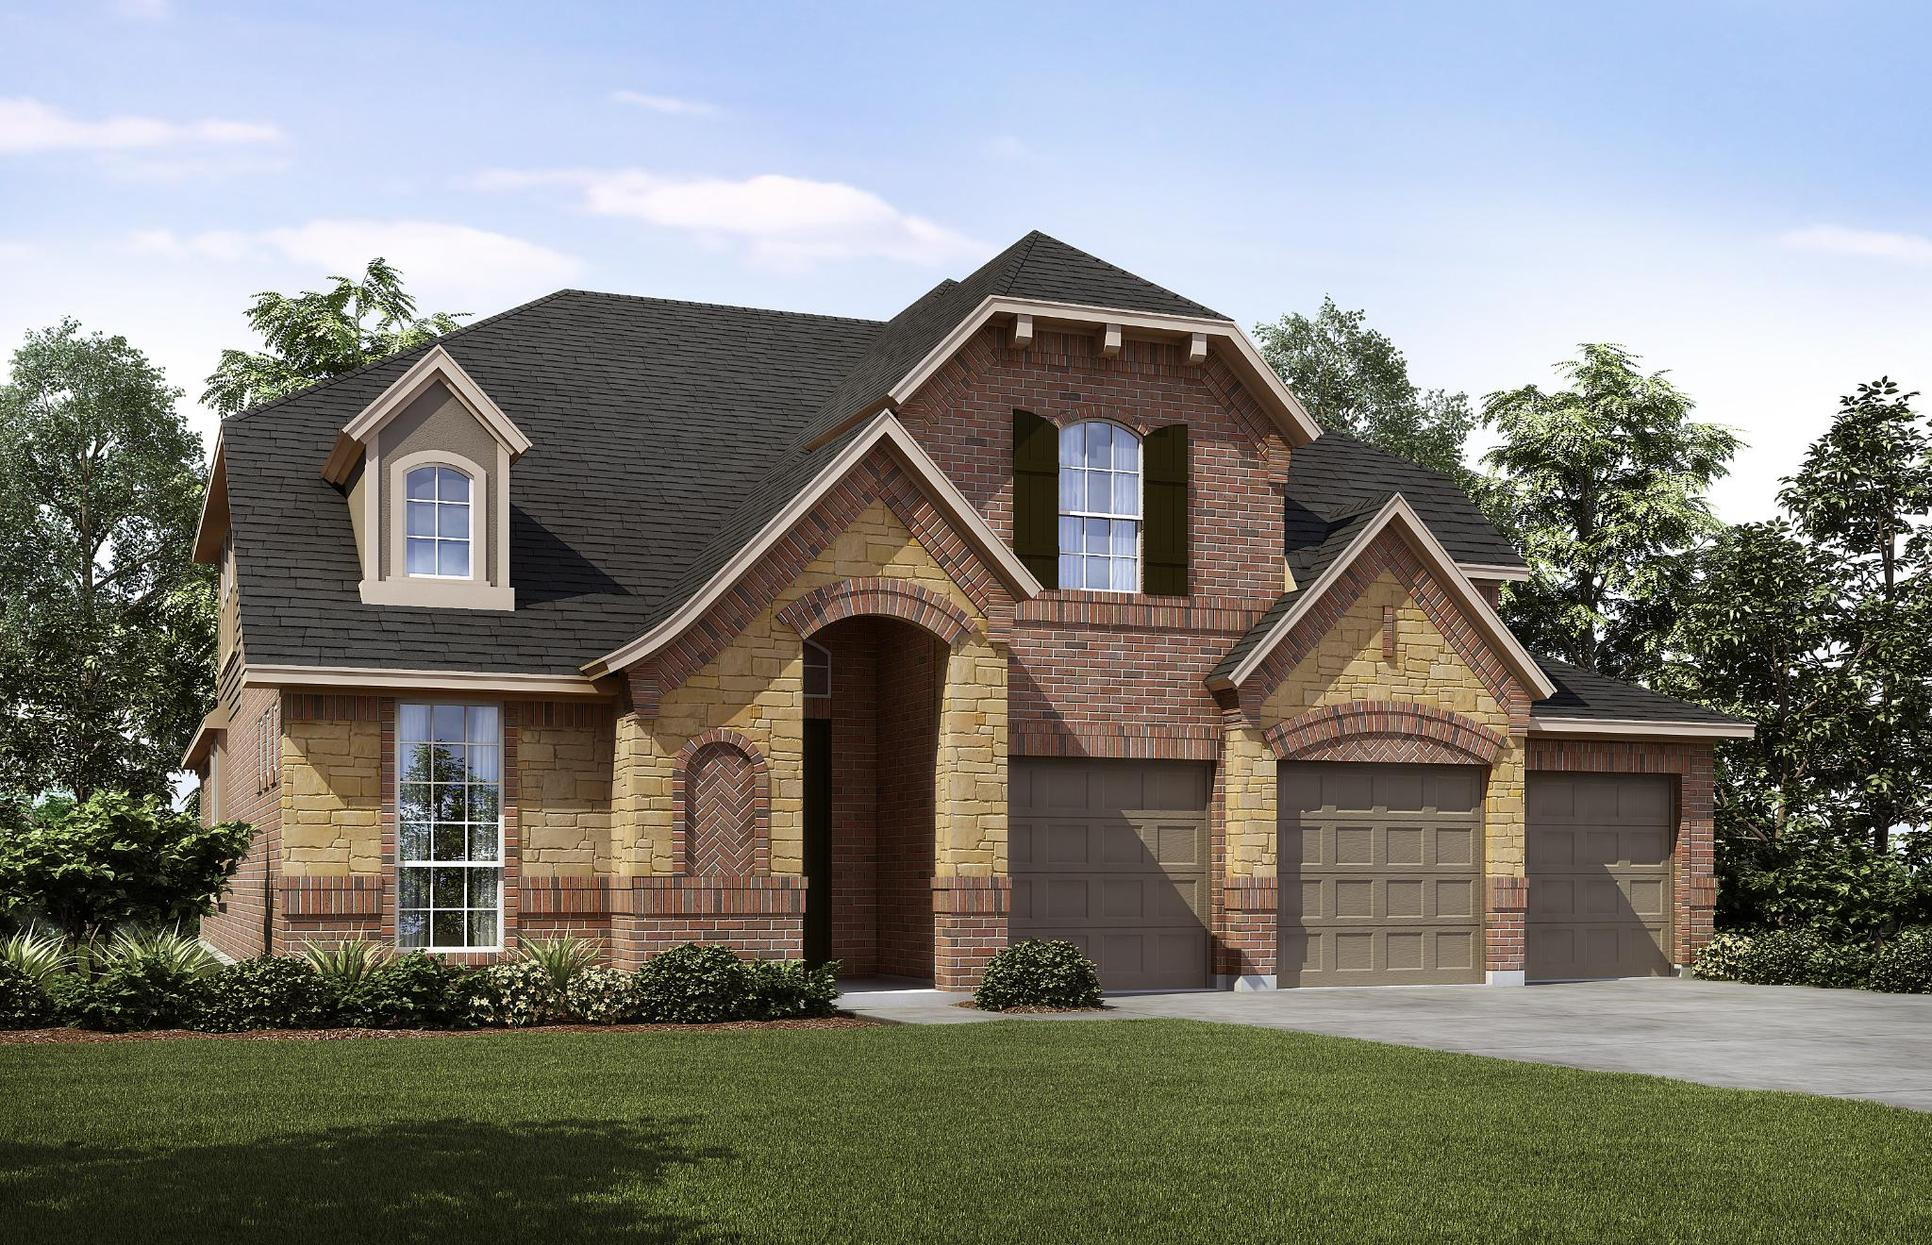 Exterior:3015 B with Stone